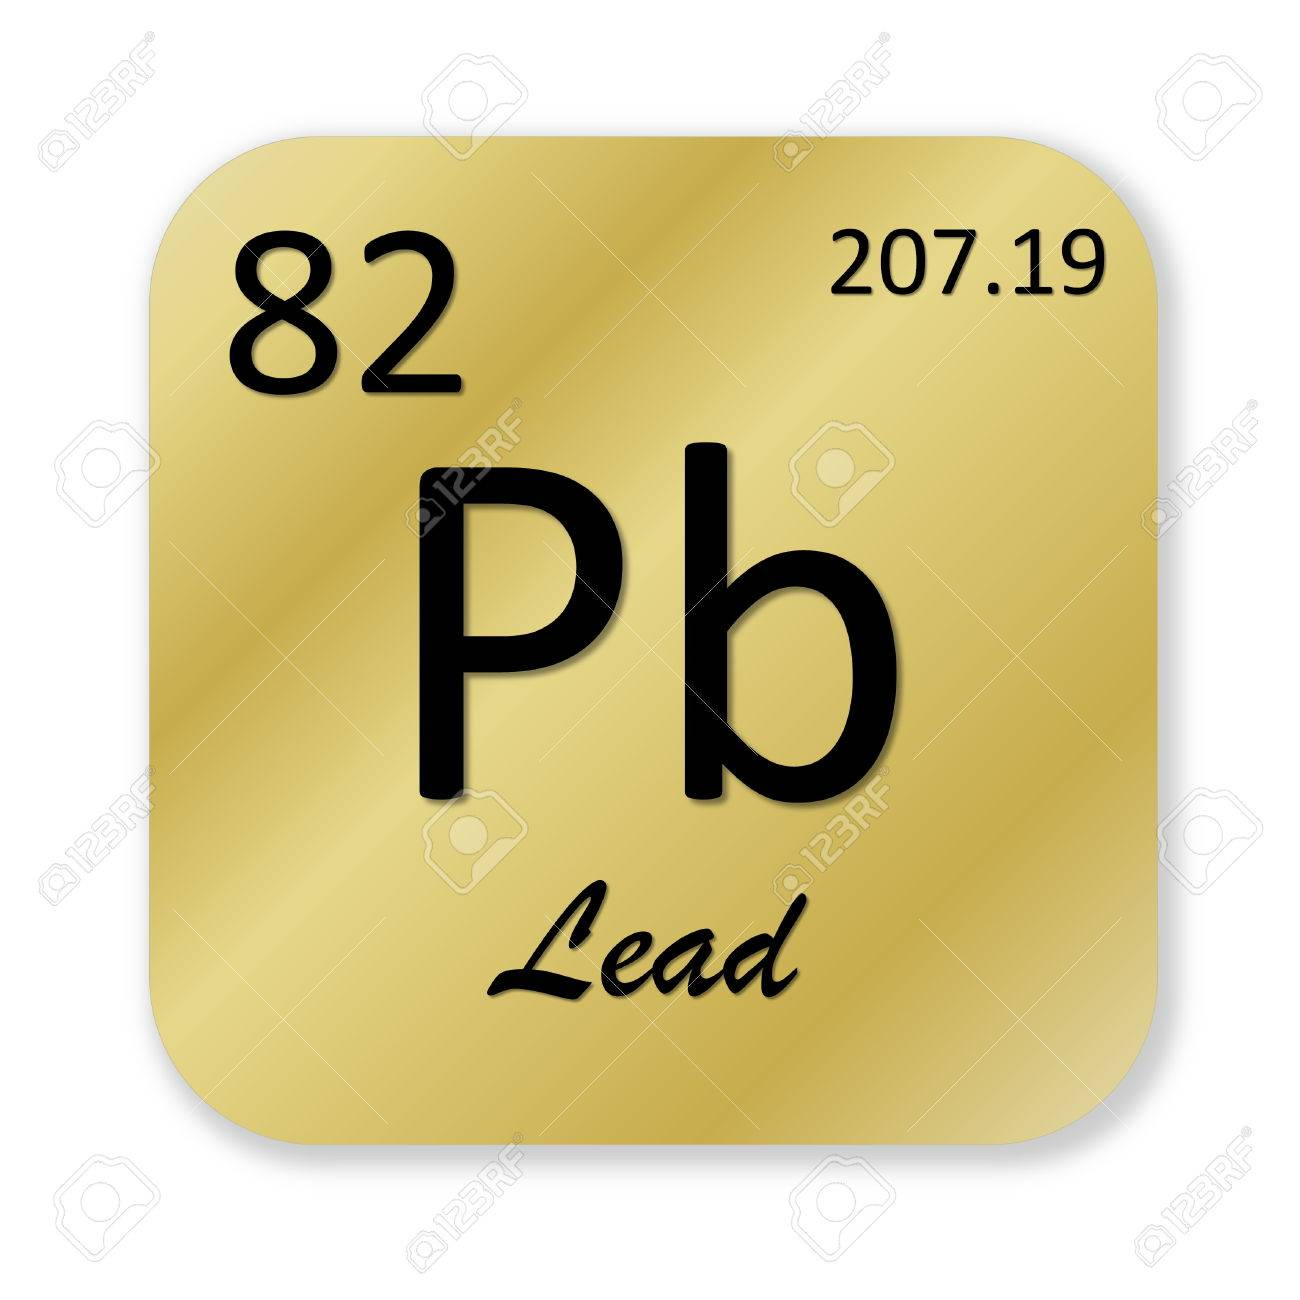 Symbol pb periodic table choice image periodic table images symbol for lead on periodic table image collections periodic symbol pb periodic table images electric wire gamestrikefo Gallery